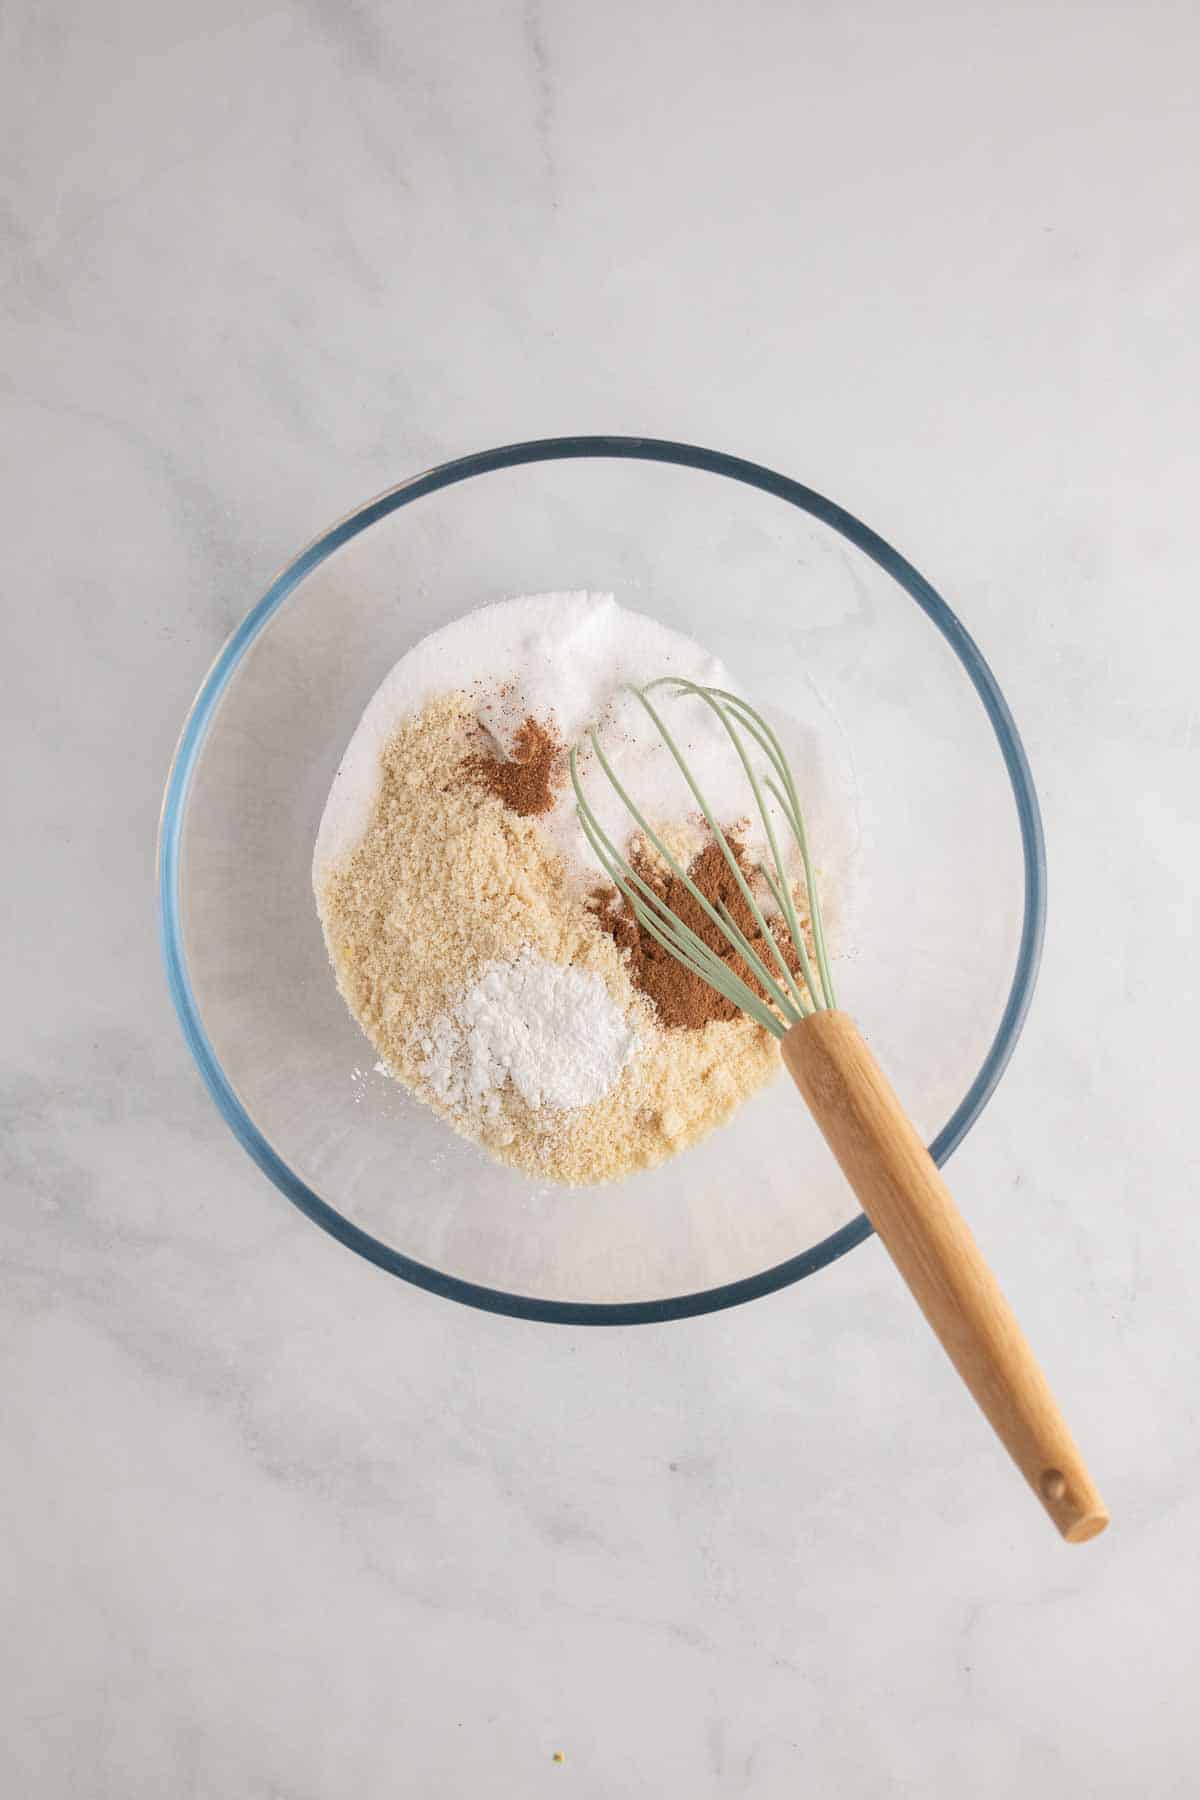 Dry ingredients in a glass bowl with a whisk, as seen from above